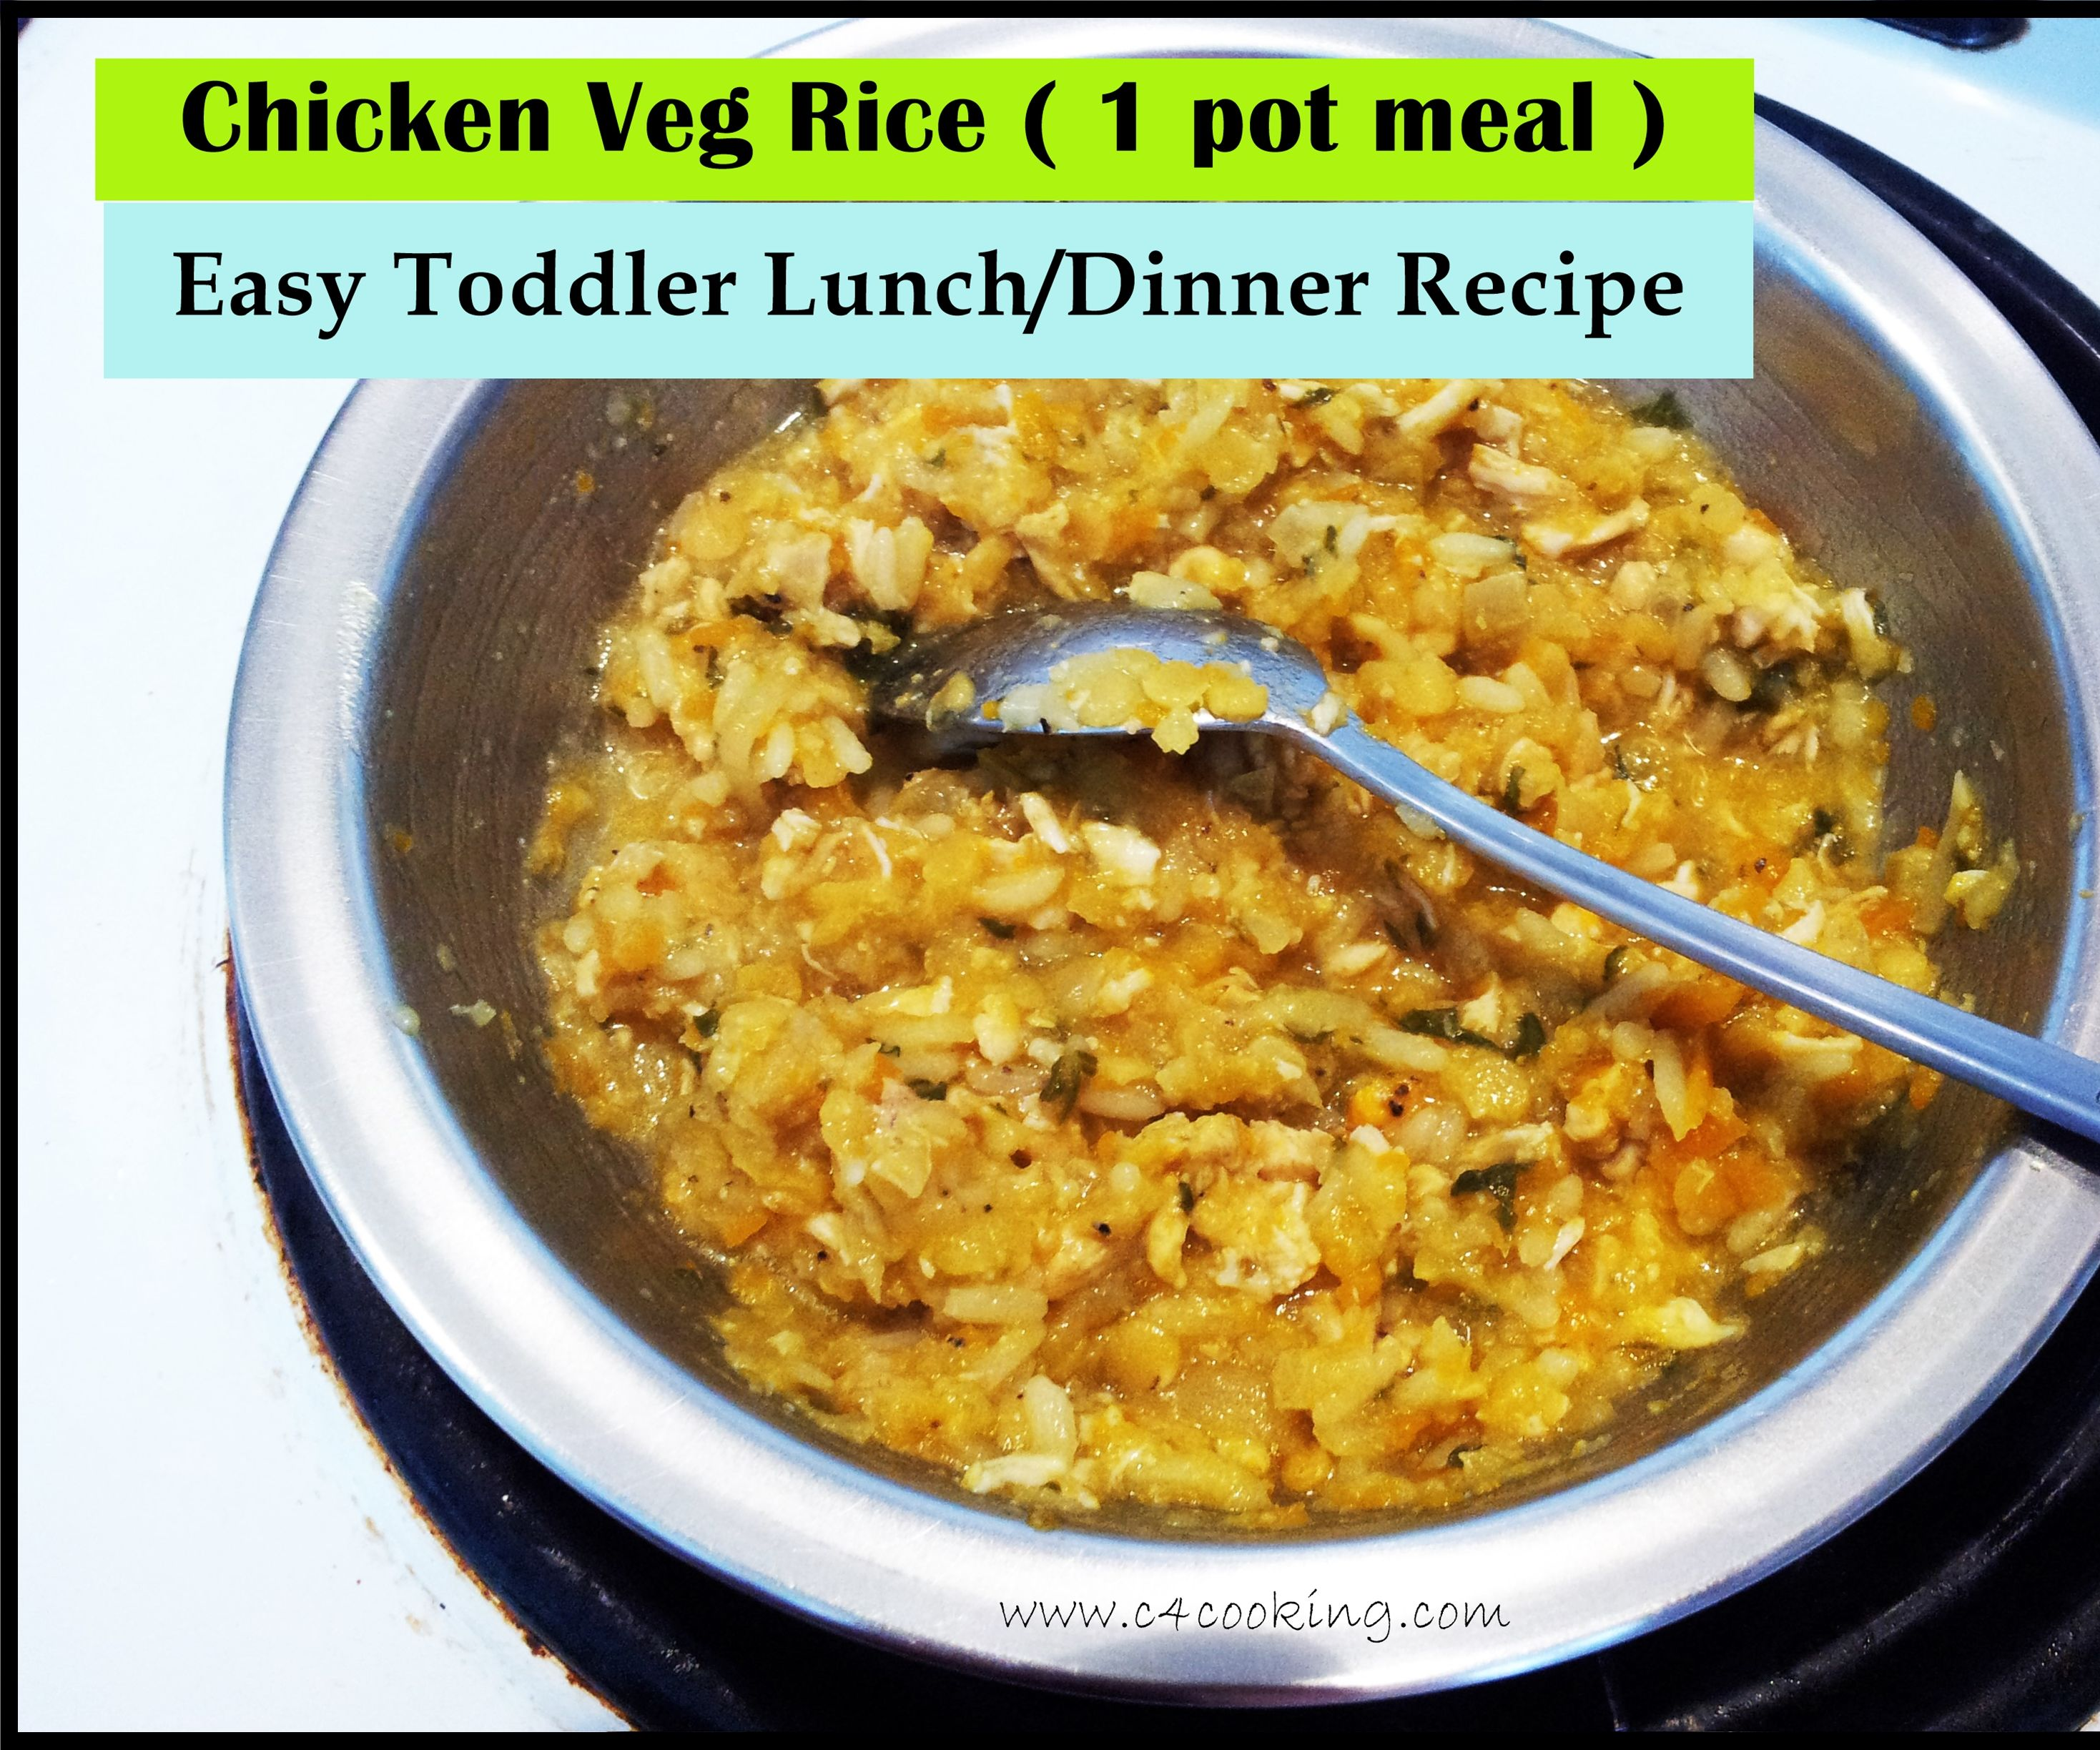 Chicken & Vegetable Rice ( 1 POT MEAL ) - Easy Toddler Lunch/Dinner Recipe